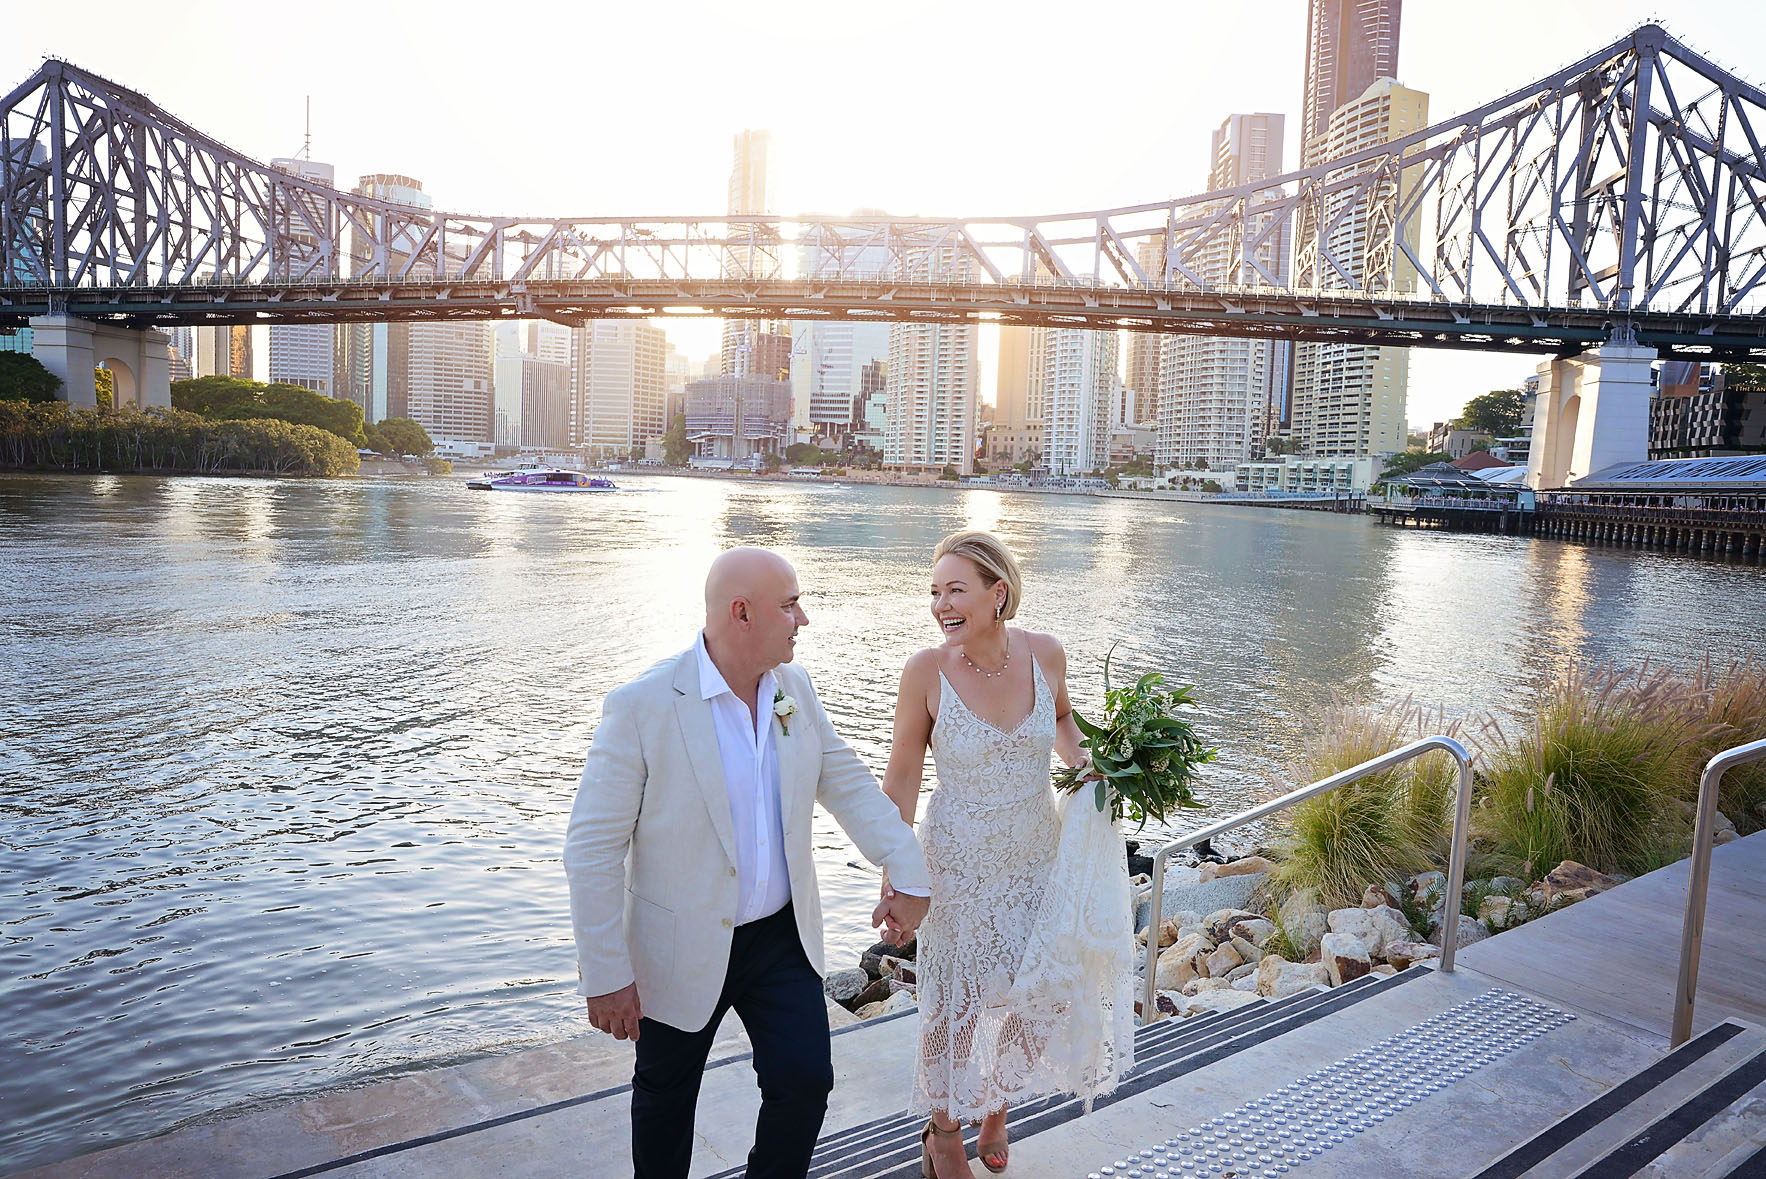 Looking for a Brisbane wedding photographer?